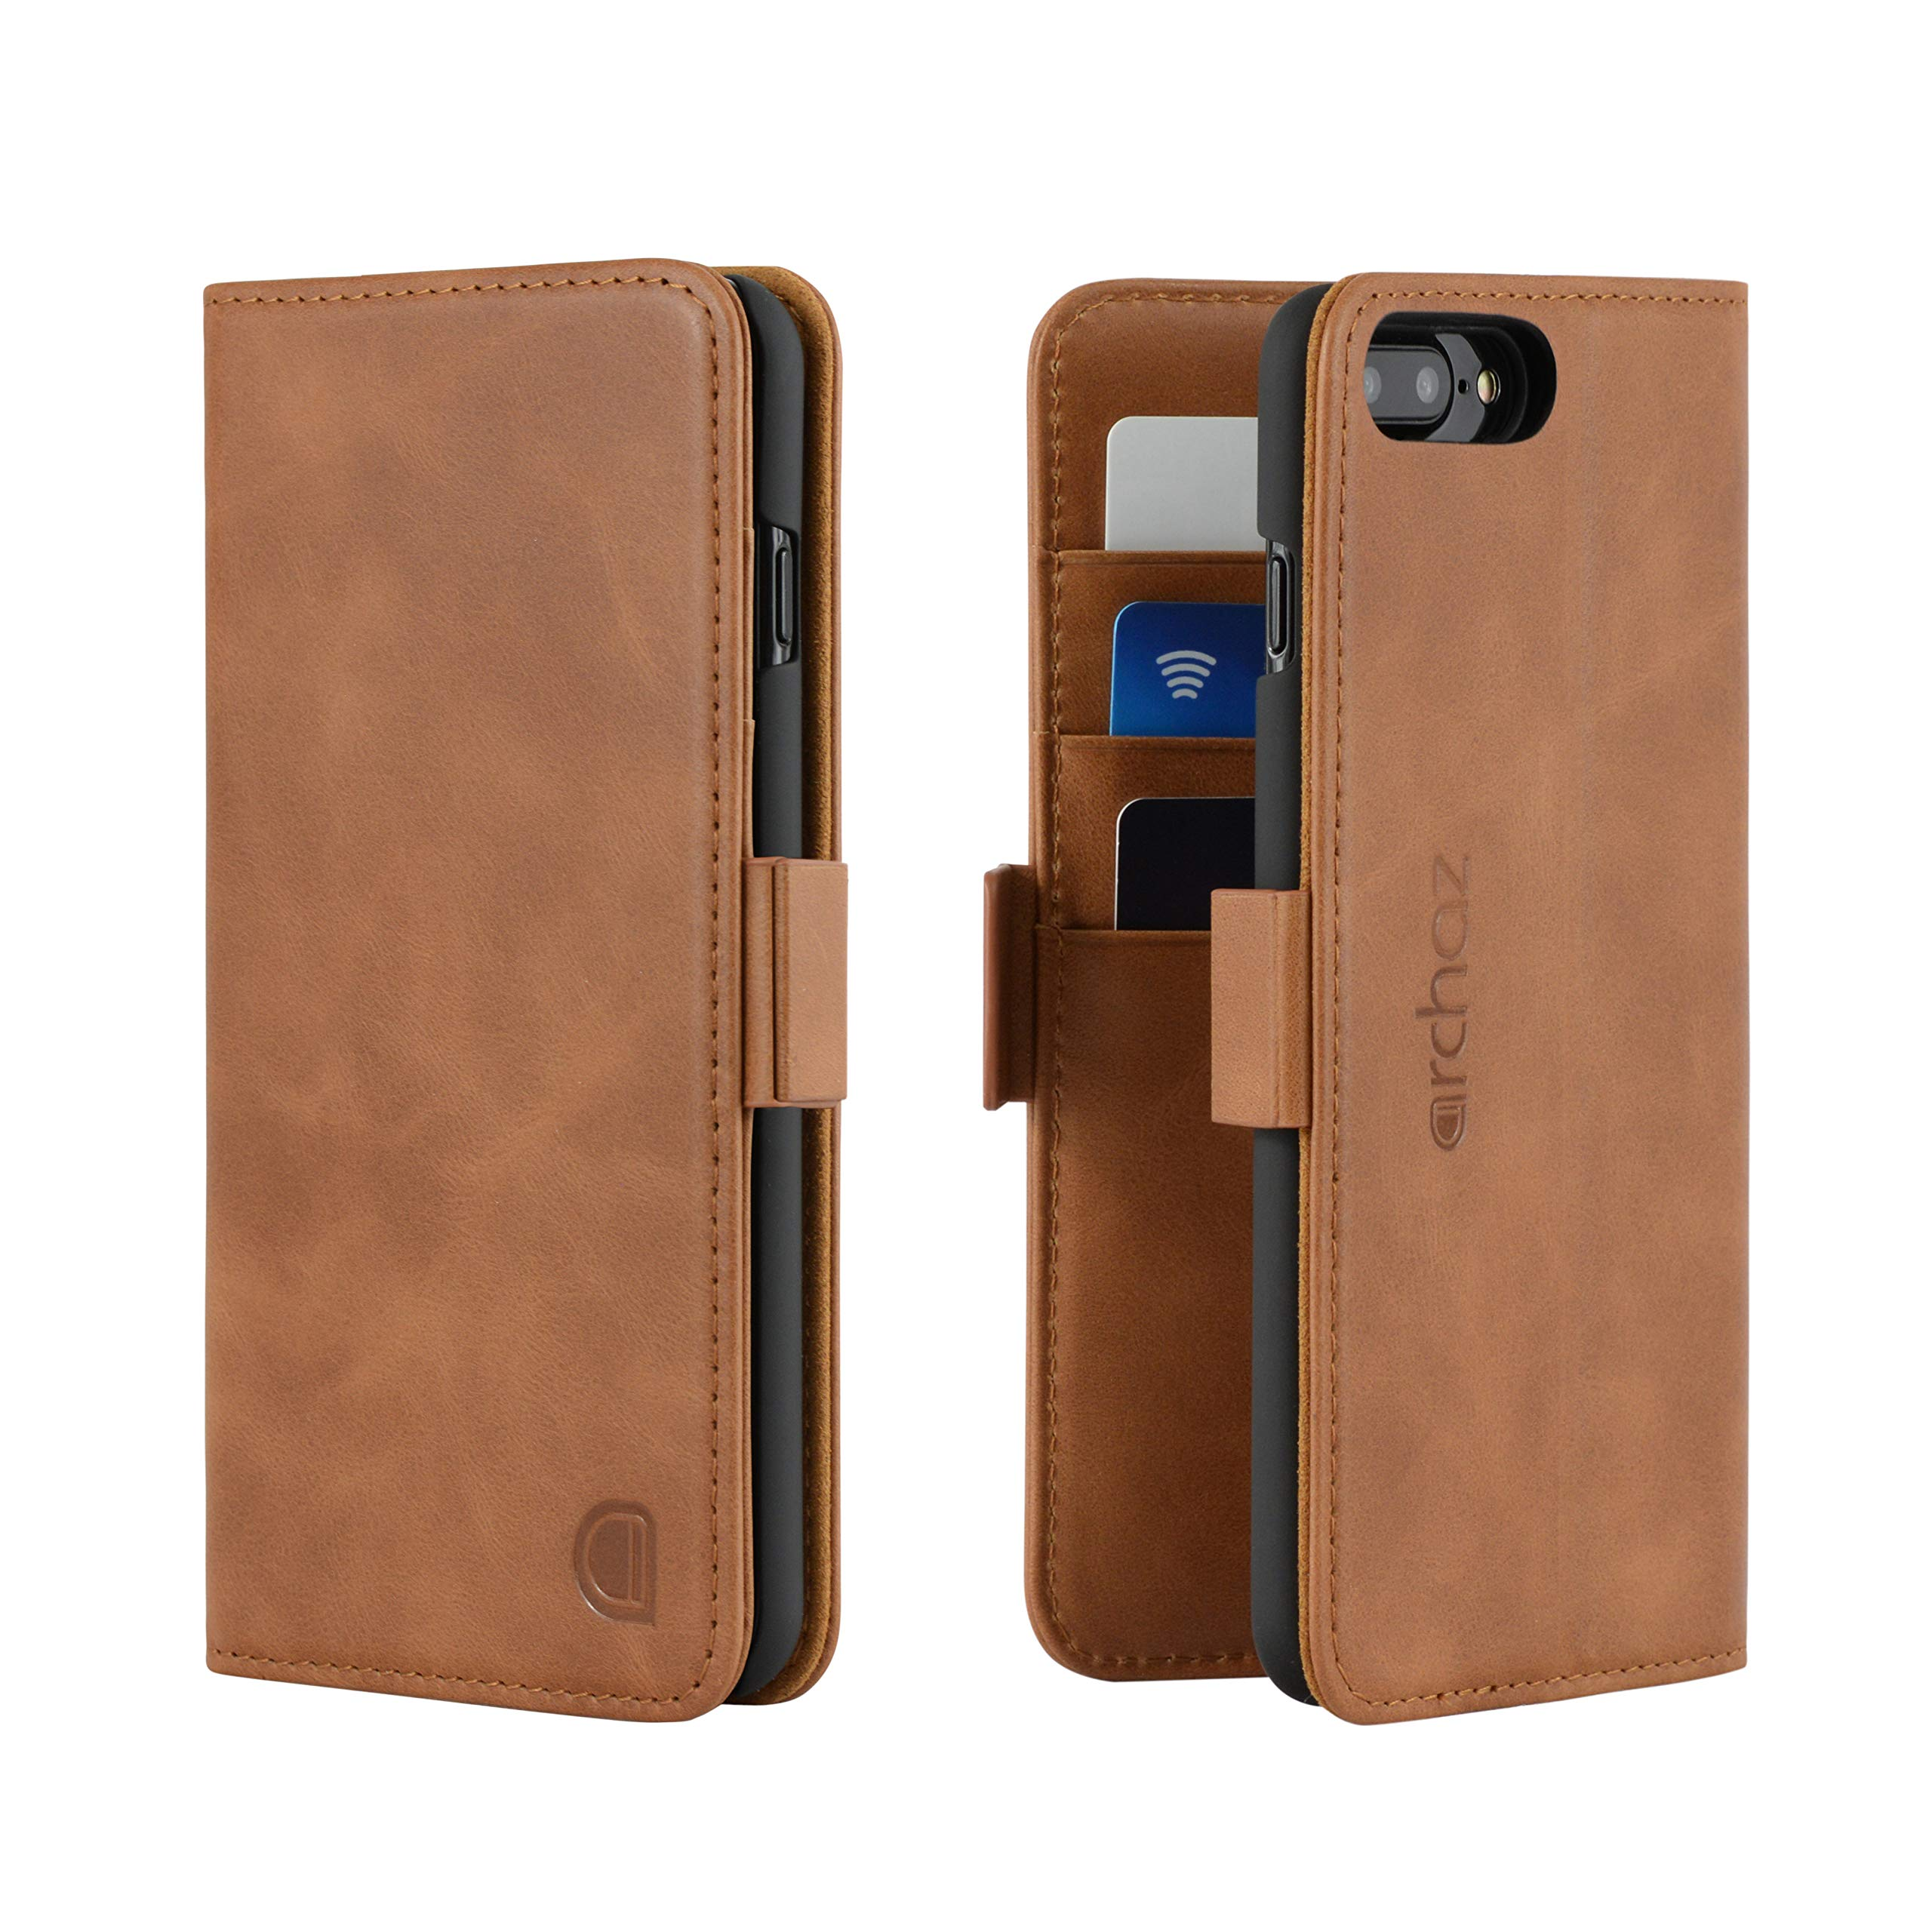 archaz iPhone 8 Plus/iPhone 7 Plus Leather Wallet Case - Premium Italian Leather Case for iPhone 8 Plus/iPhone 7 Plus - Flip Cover with Magnetic Closure - Adjustable Viewing Stand (tan Brown)